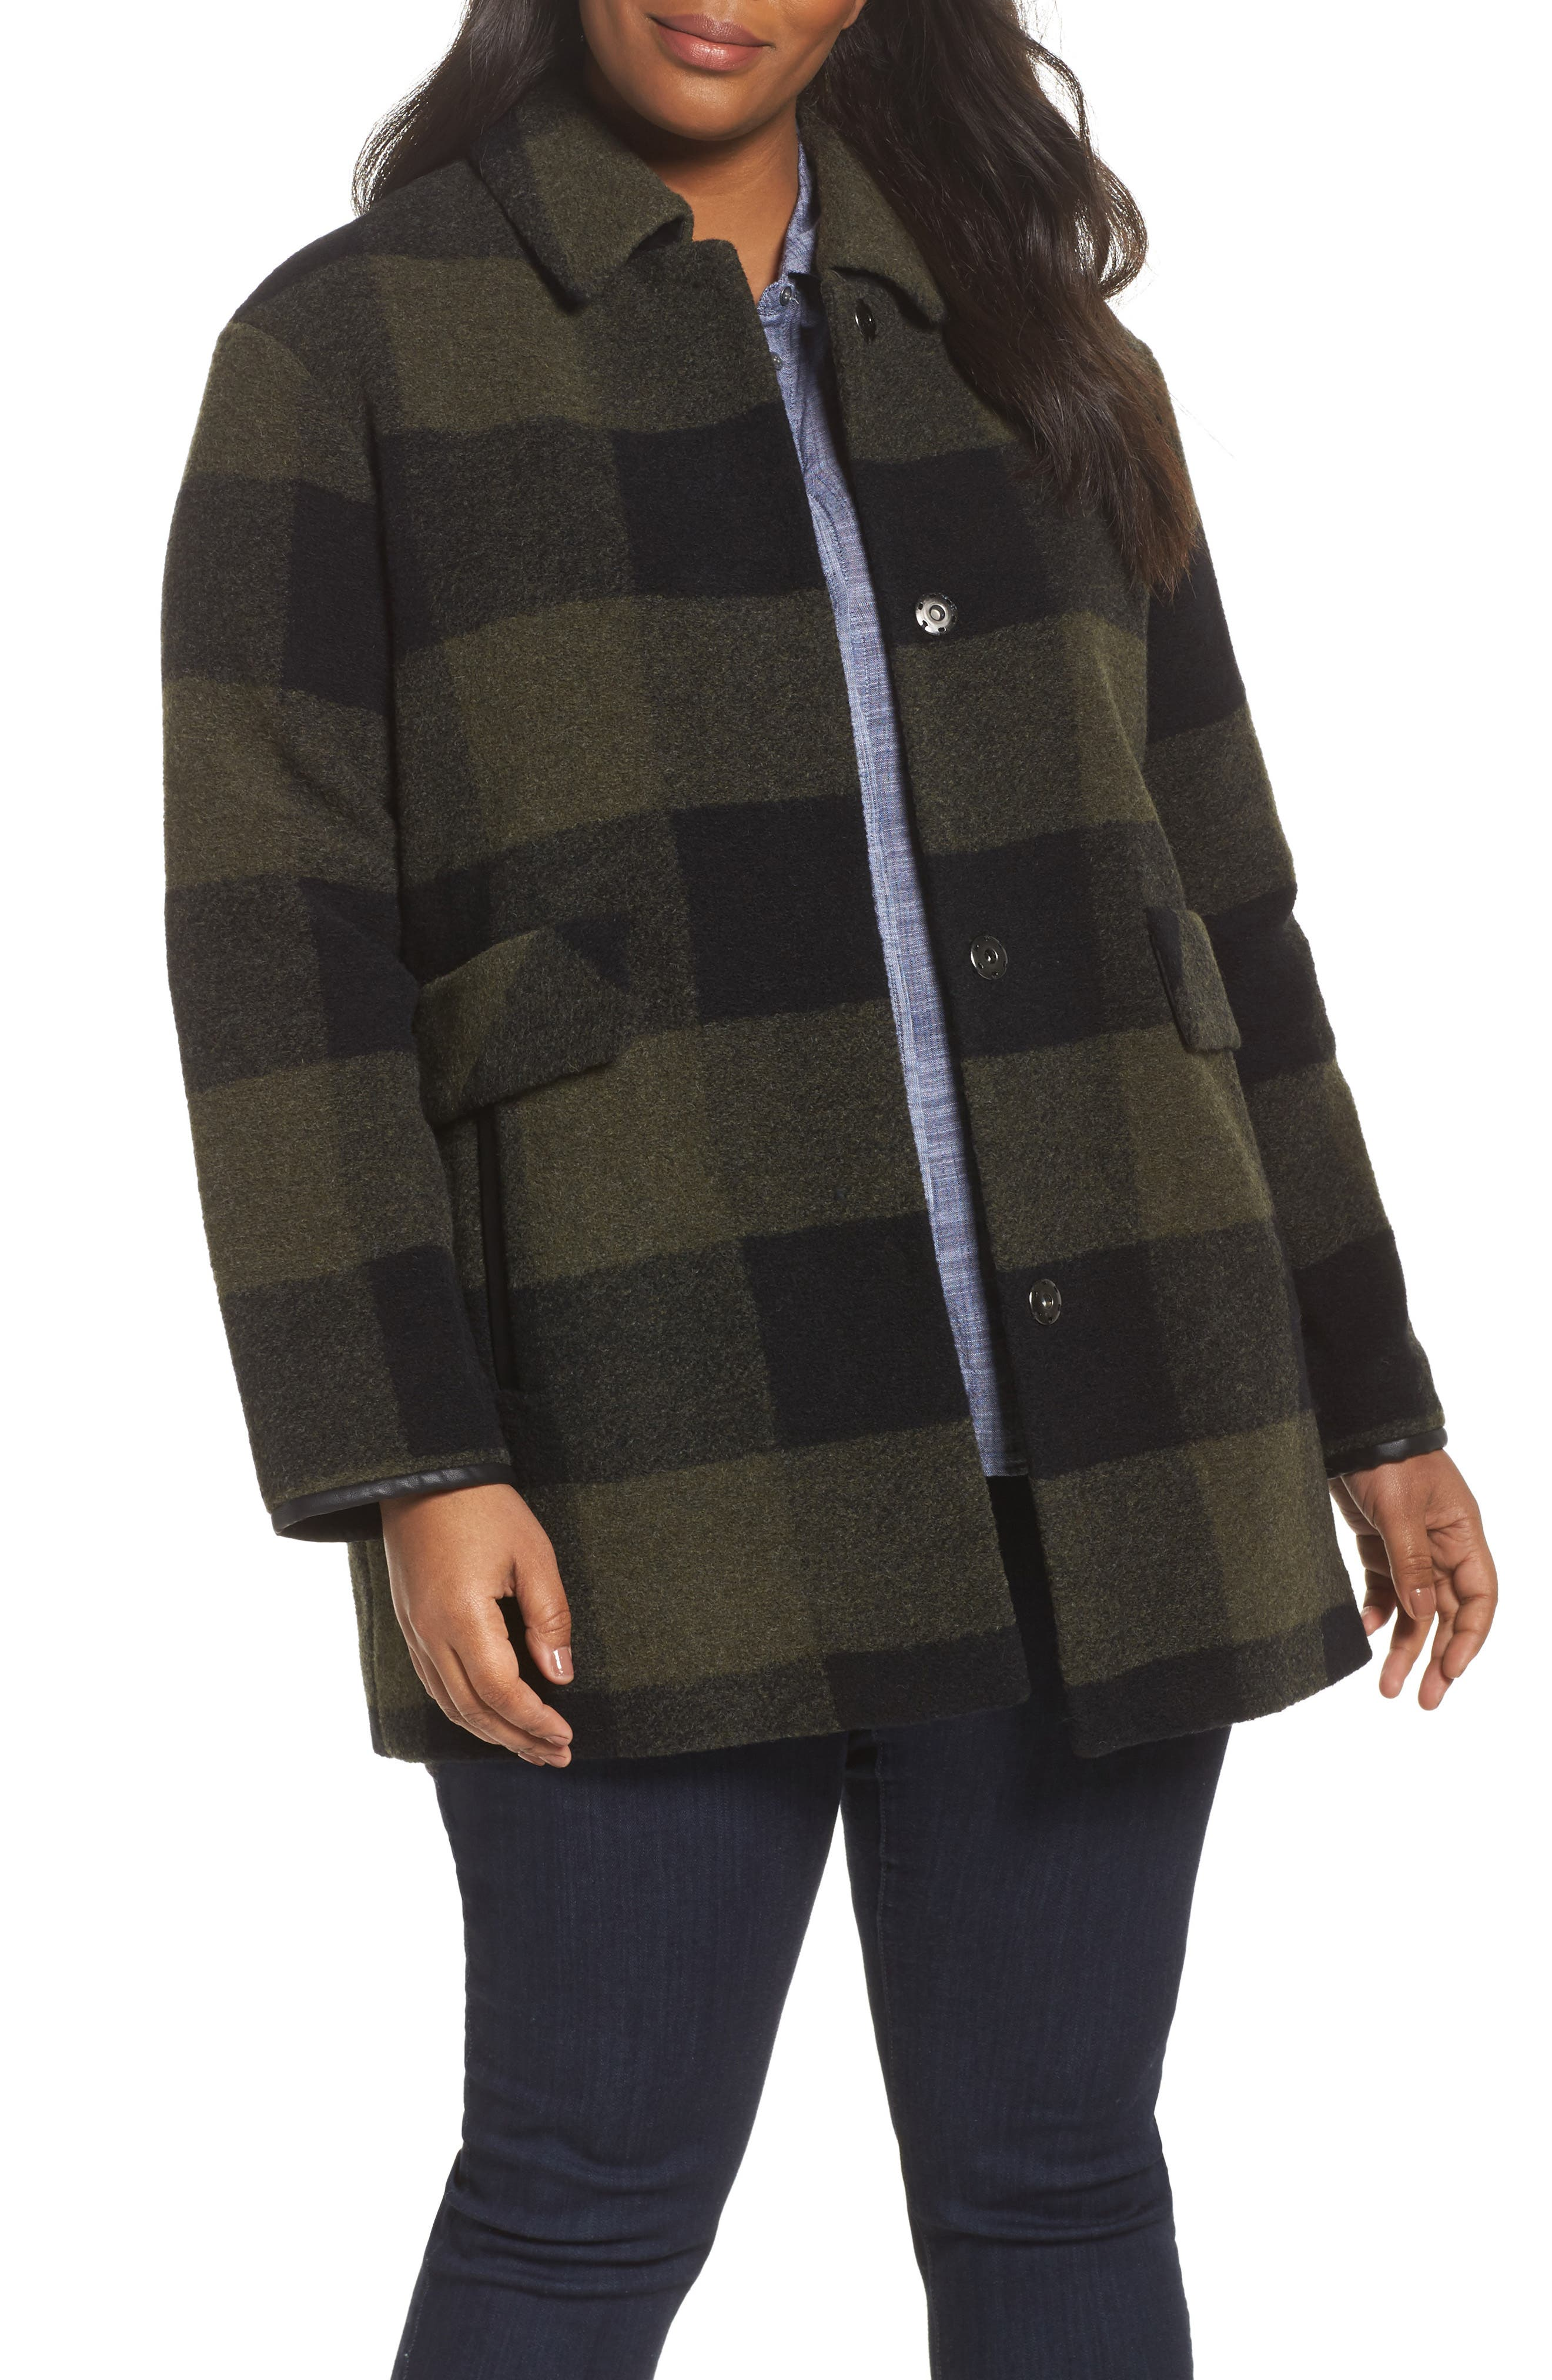 Paul Bunyan Plaid Wool Blend Barn Coat,                             Main thumbnail 1, color,